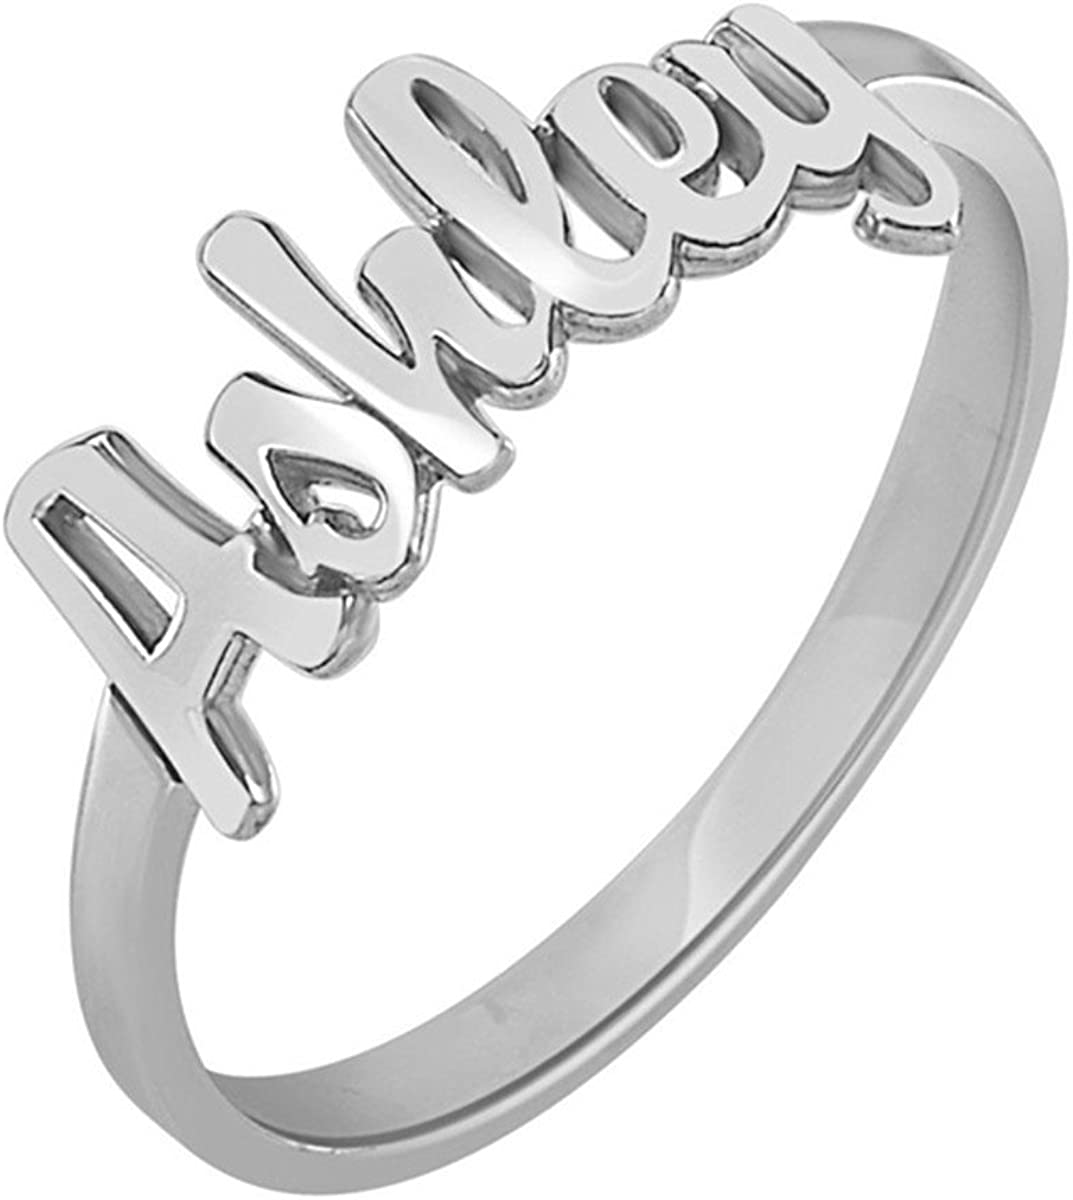 HACOOL 925 Sterling Silver Personalized Men Unisex Name Ring Custom Made with Any Names,Jewelry for Women